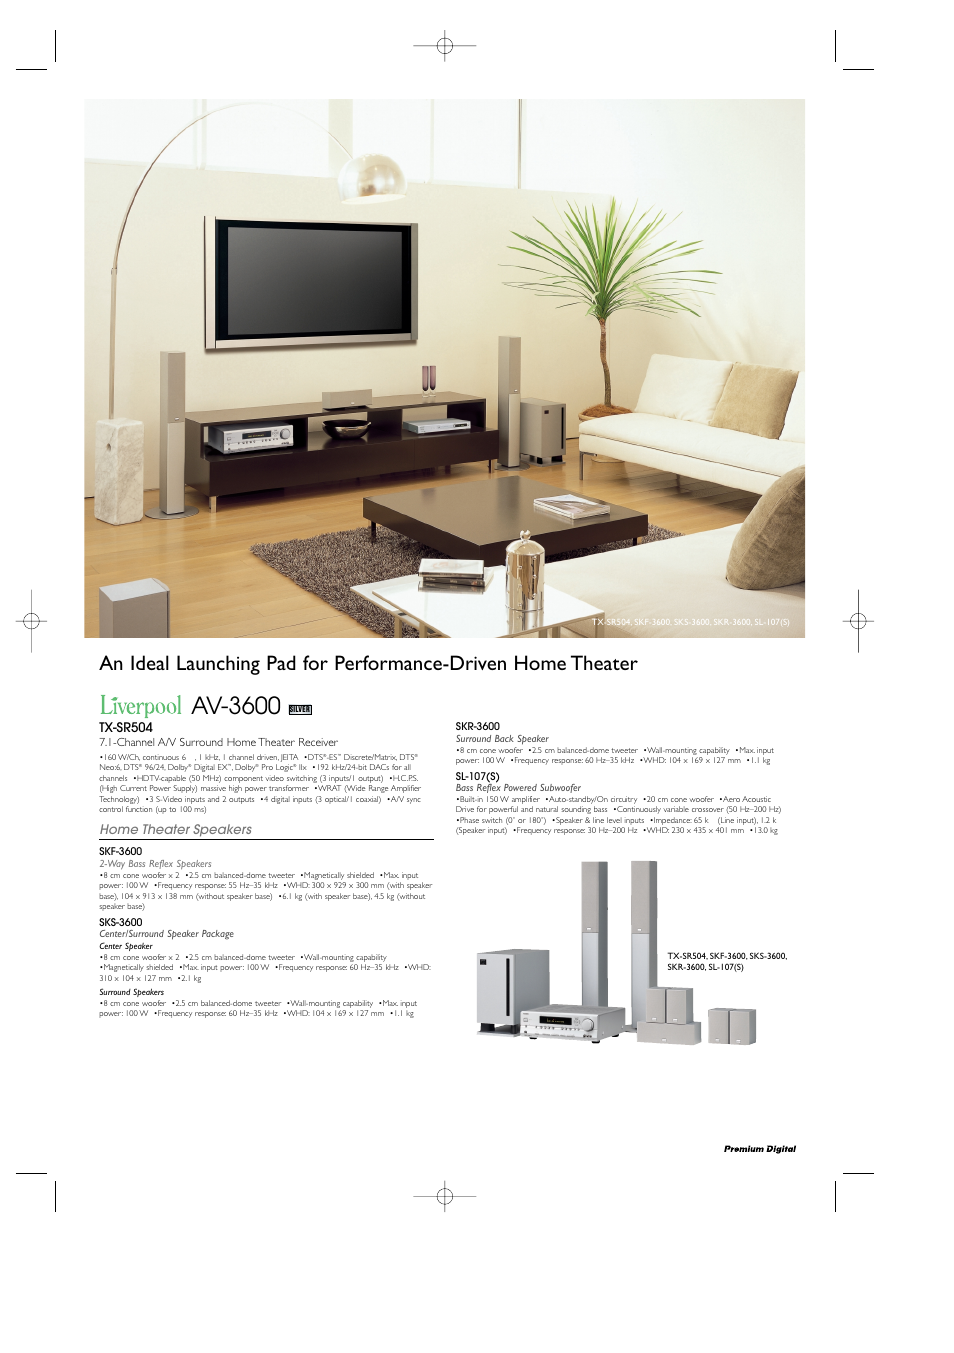 Onkyo Sl 107s User Manual 8 Pages Speakers A Center Speaker And Two Surround Powered